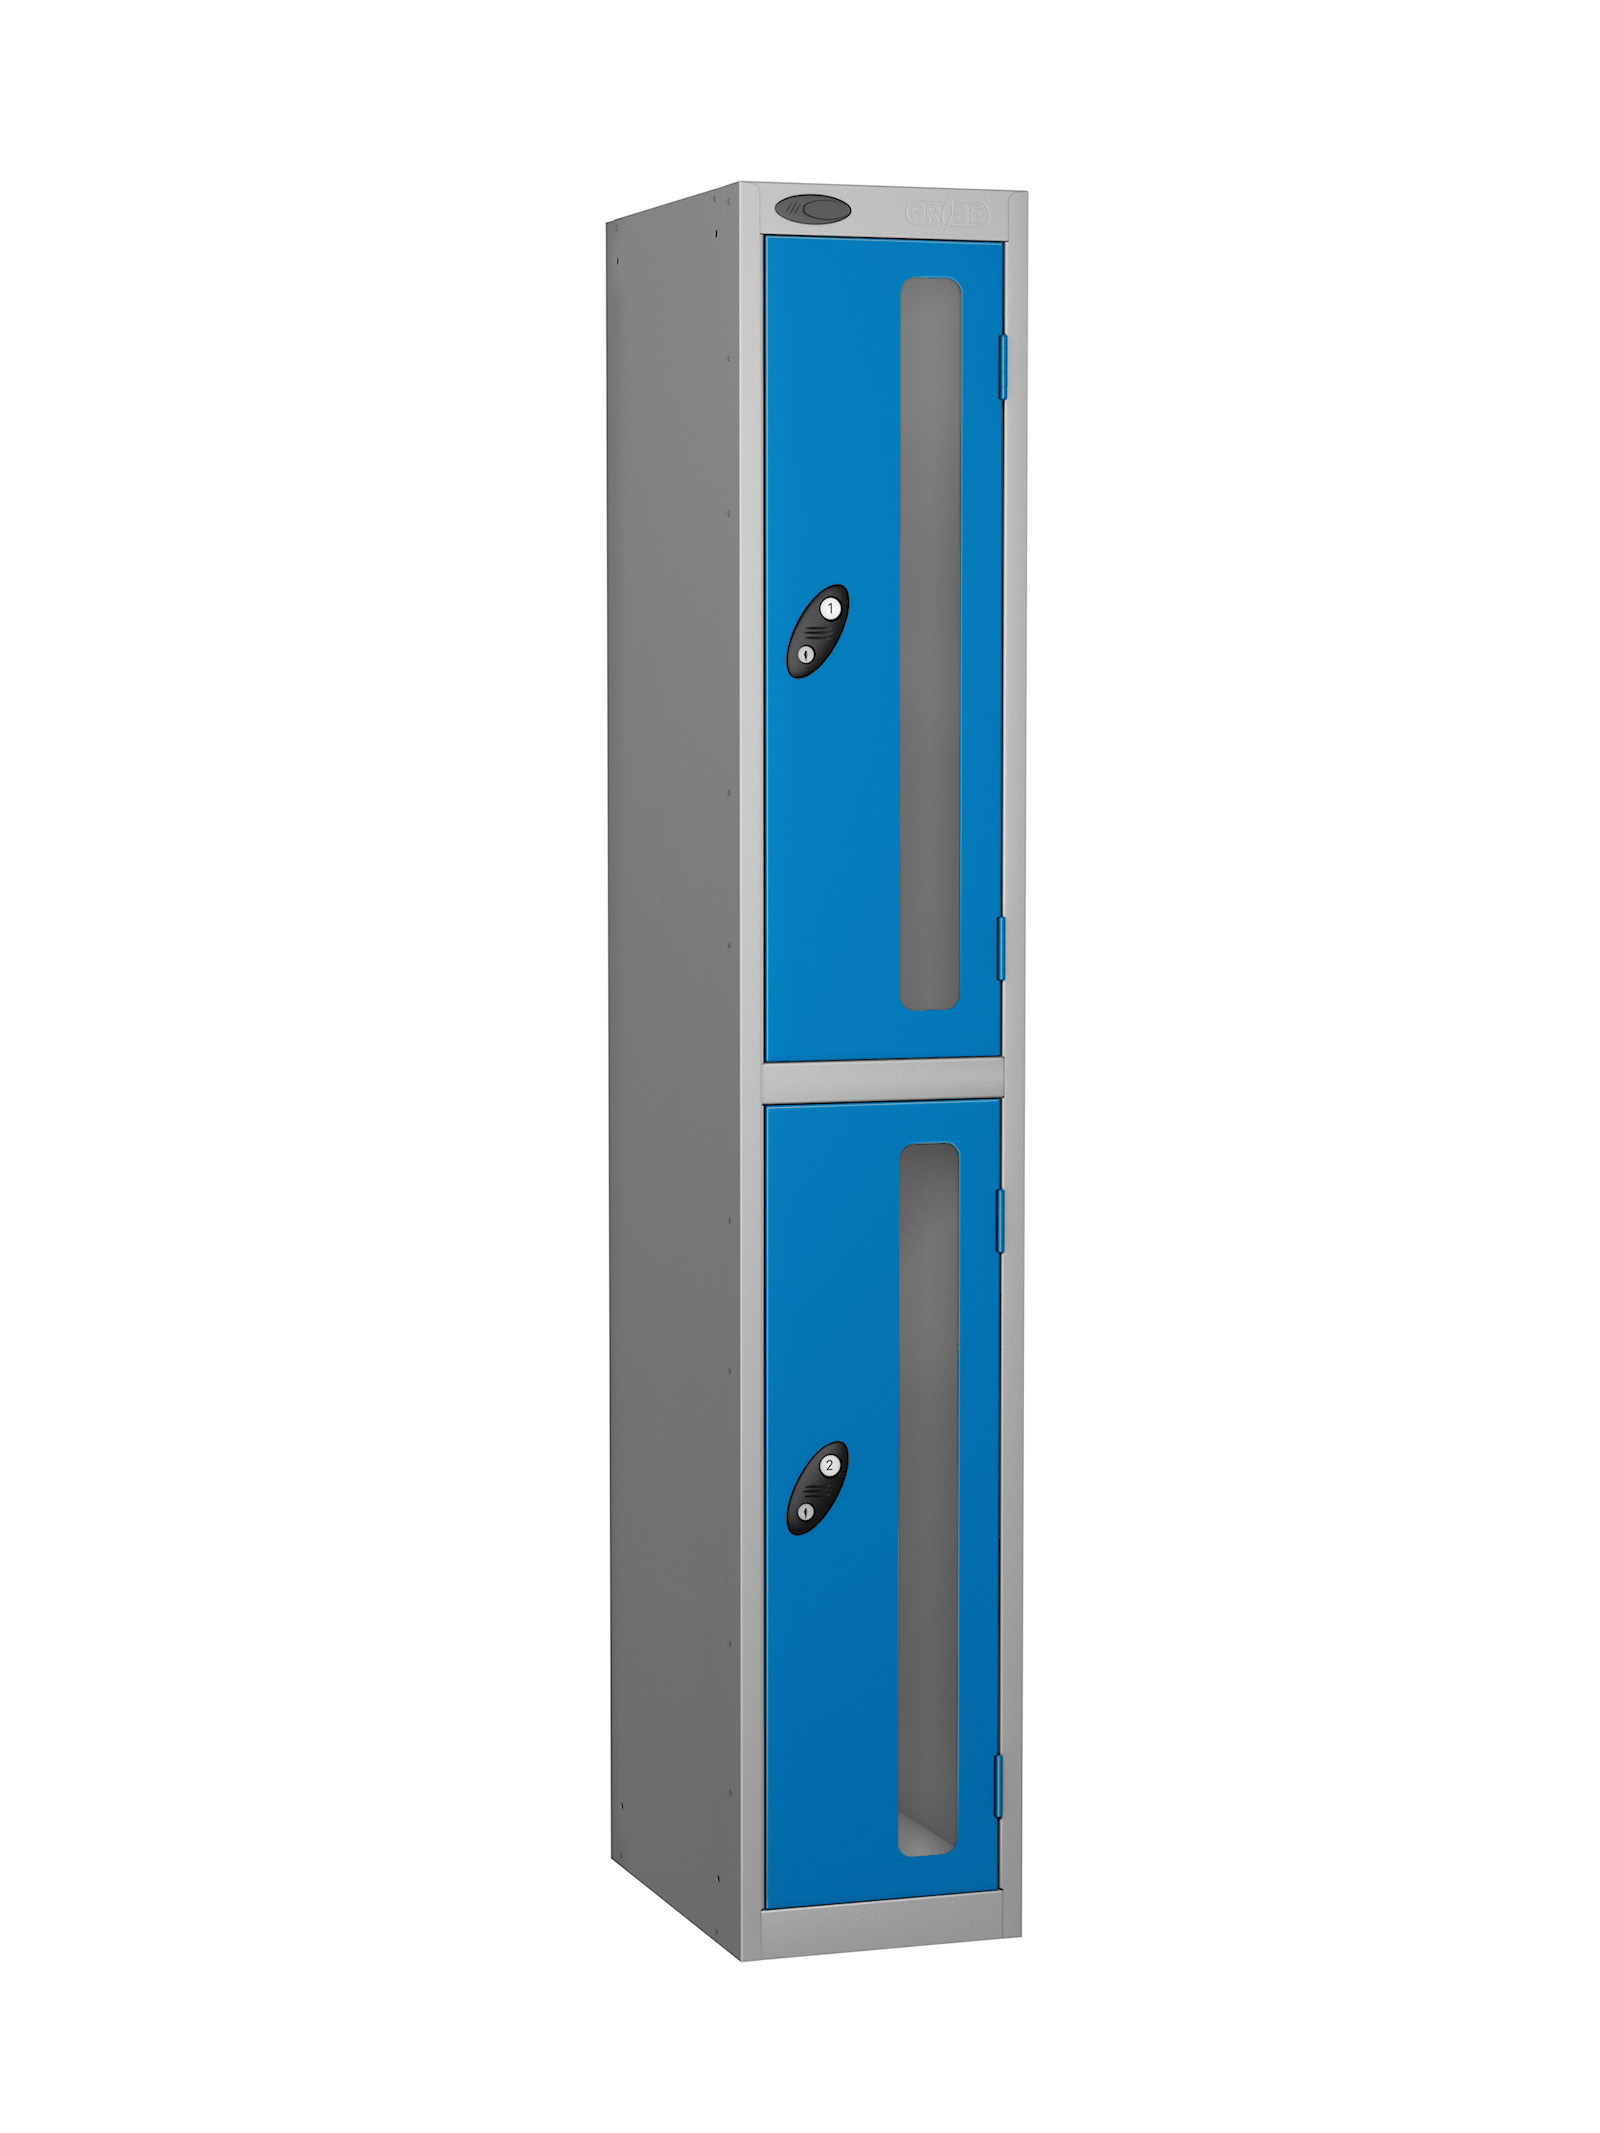 Probe 2 doors vision panel anti-stock theft locker blue